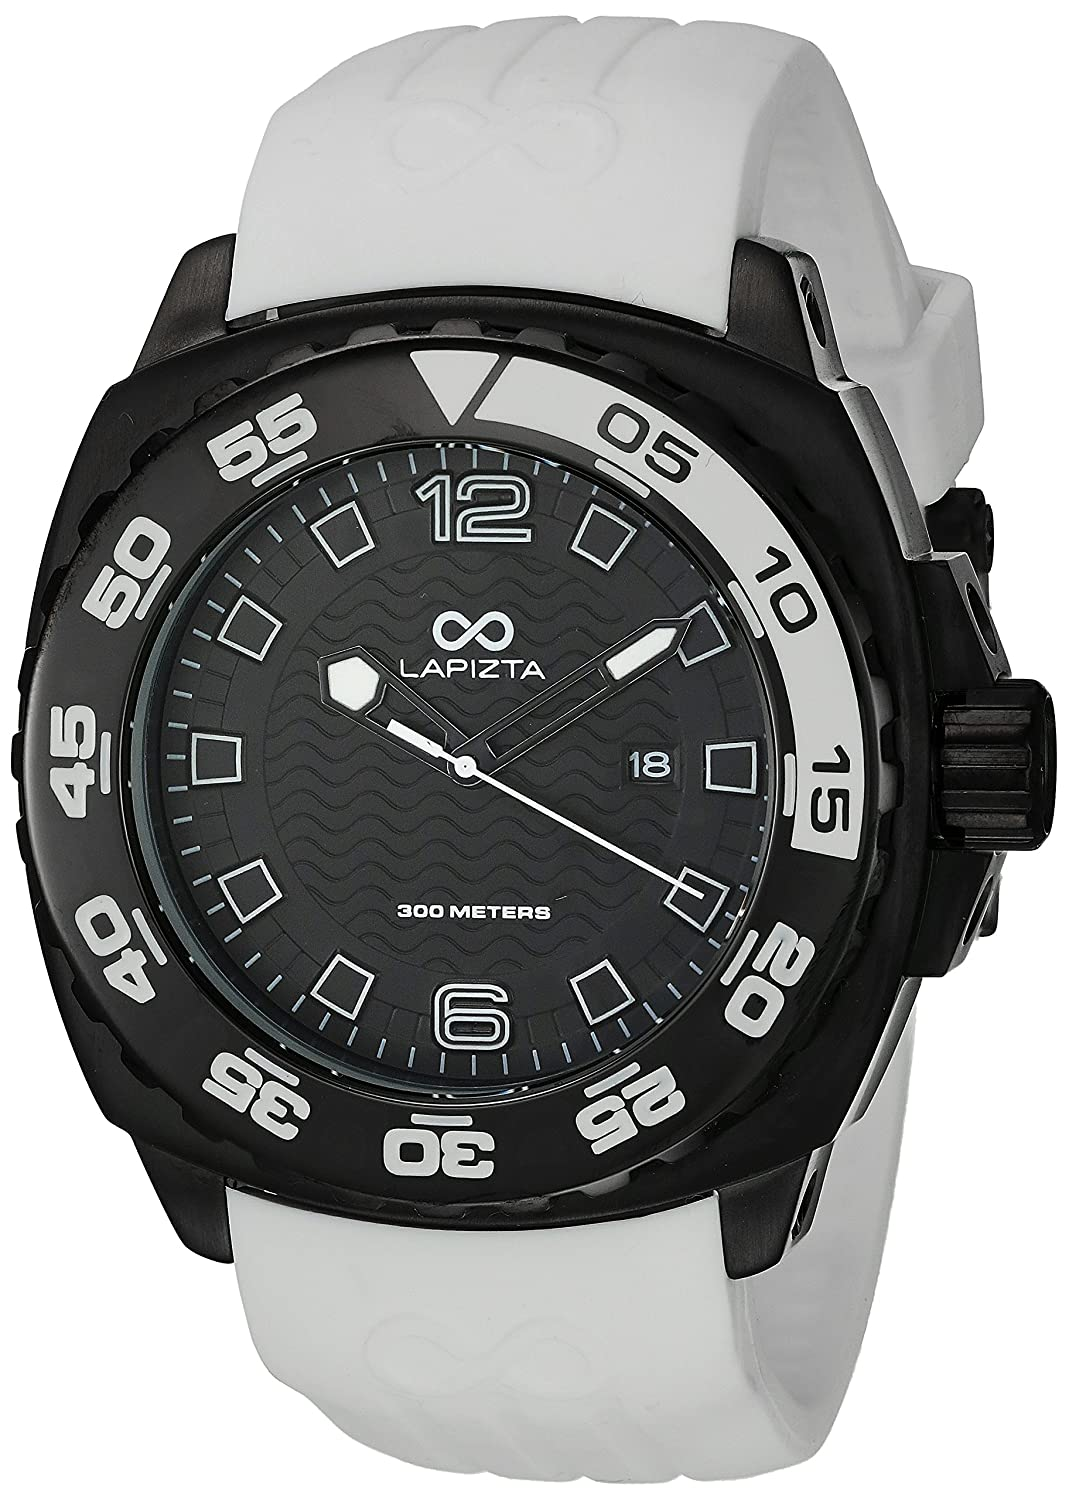 LAPIZTA Audax 300M Diver's Watch - 48mm White and Black L22.1401